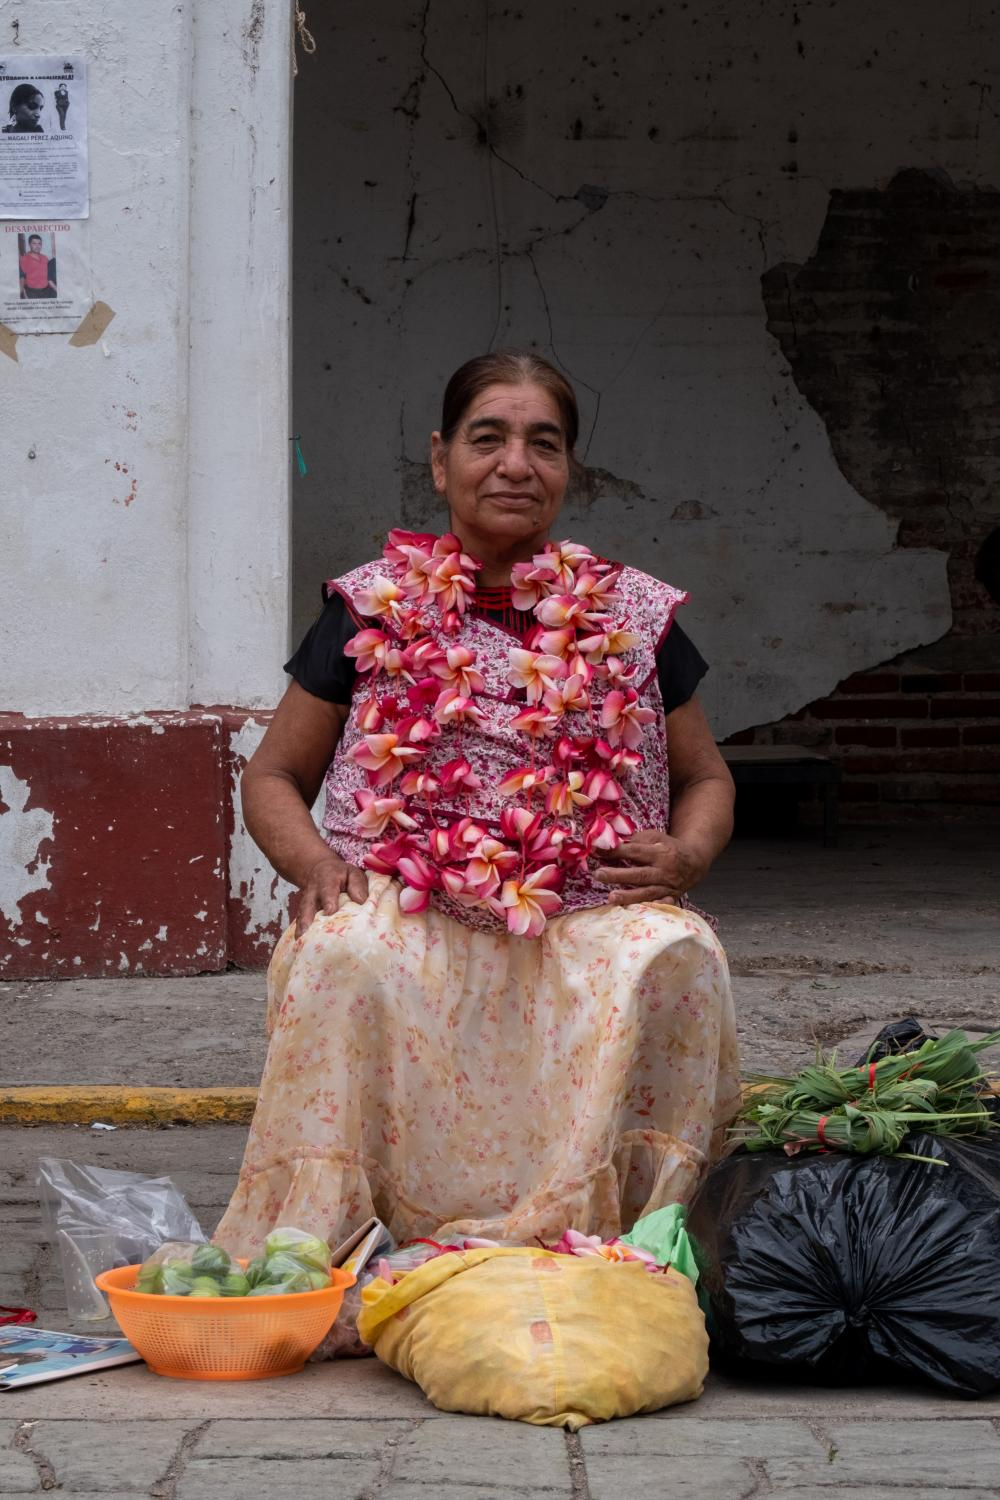 Indigenous Zapotec women sell traditional flower Cacalosuchil. For an hour or so we talked about how afraid they were of incoming earthquakes and how no help from the government had come to repair the structural damages in their communities, while crime and insecurity had dramatically increased.